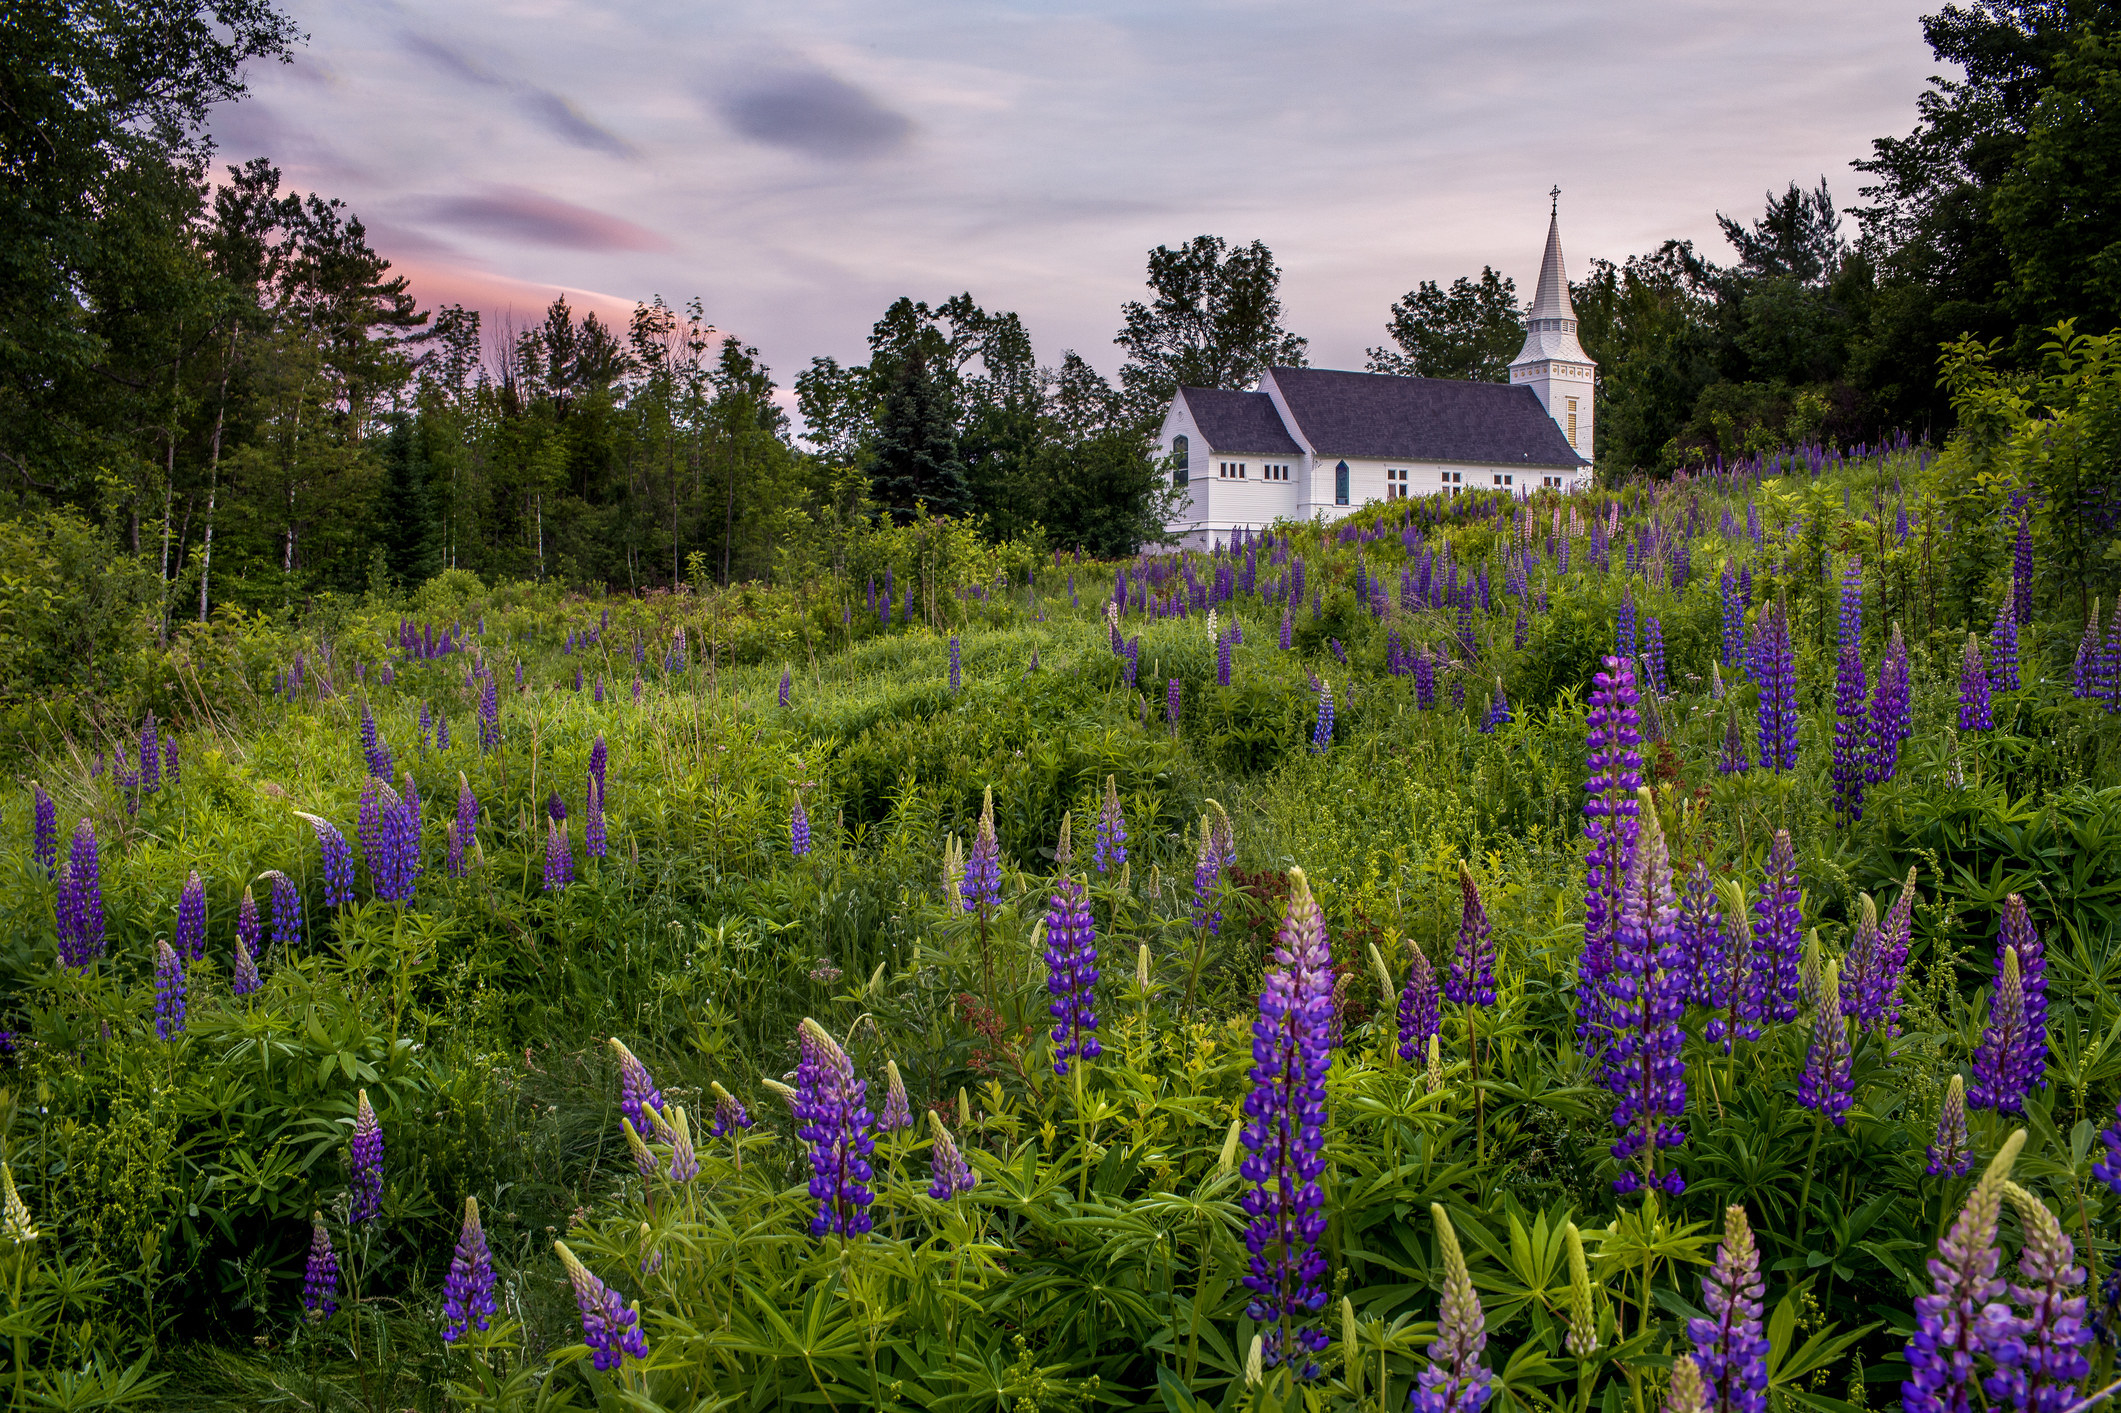 A field of purple lupine flowers leading up to an old-fashioned white building under a twilight sky